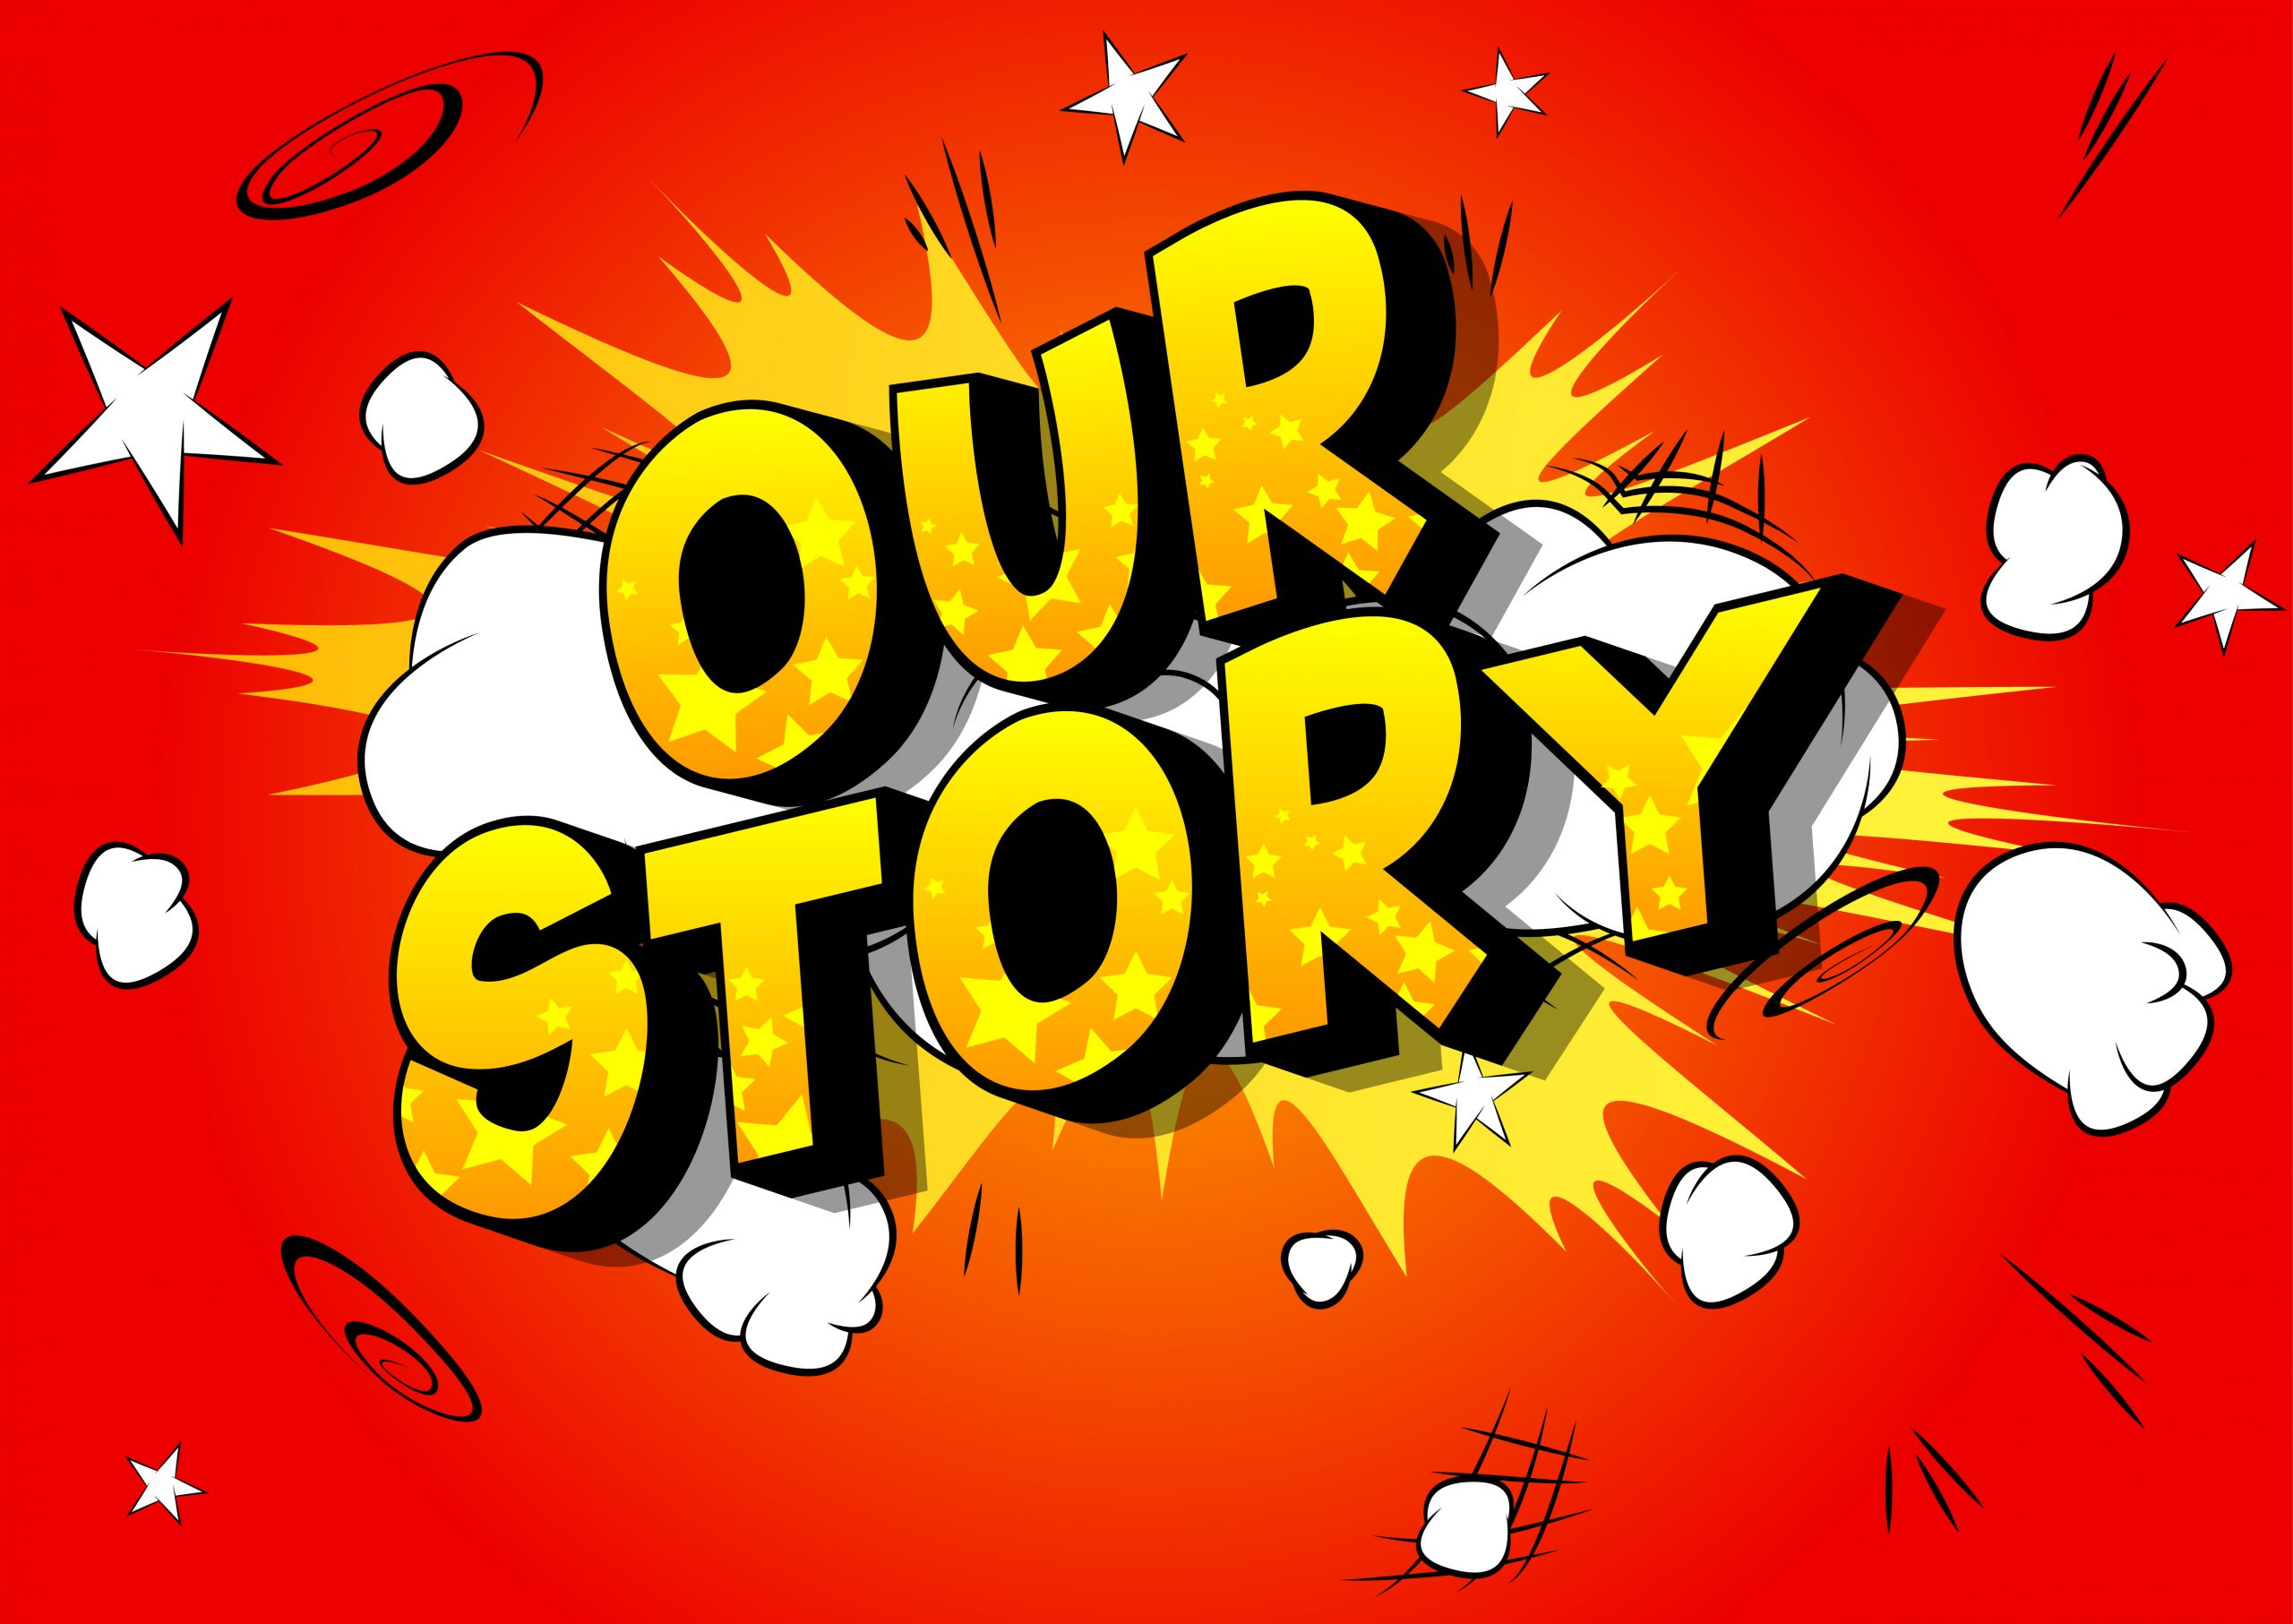 CLICK, HEAR! – To Listen to the True Story of Our Company